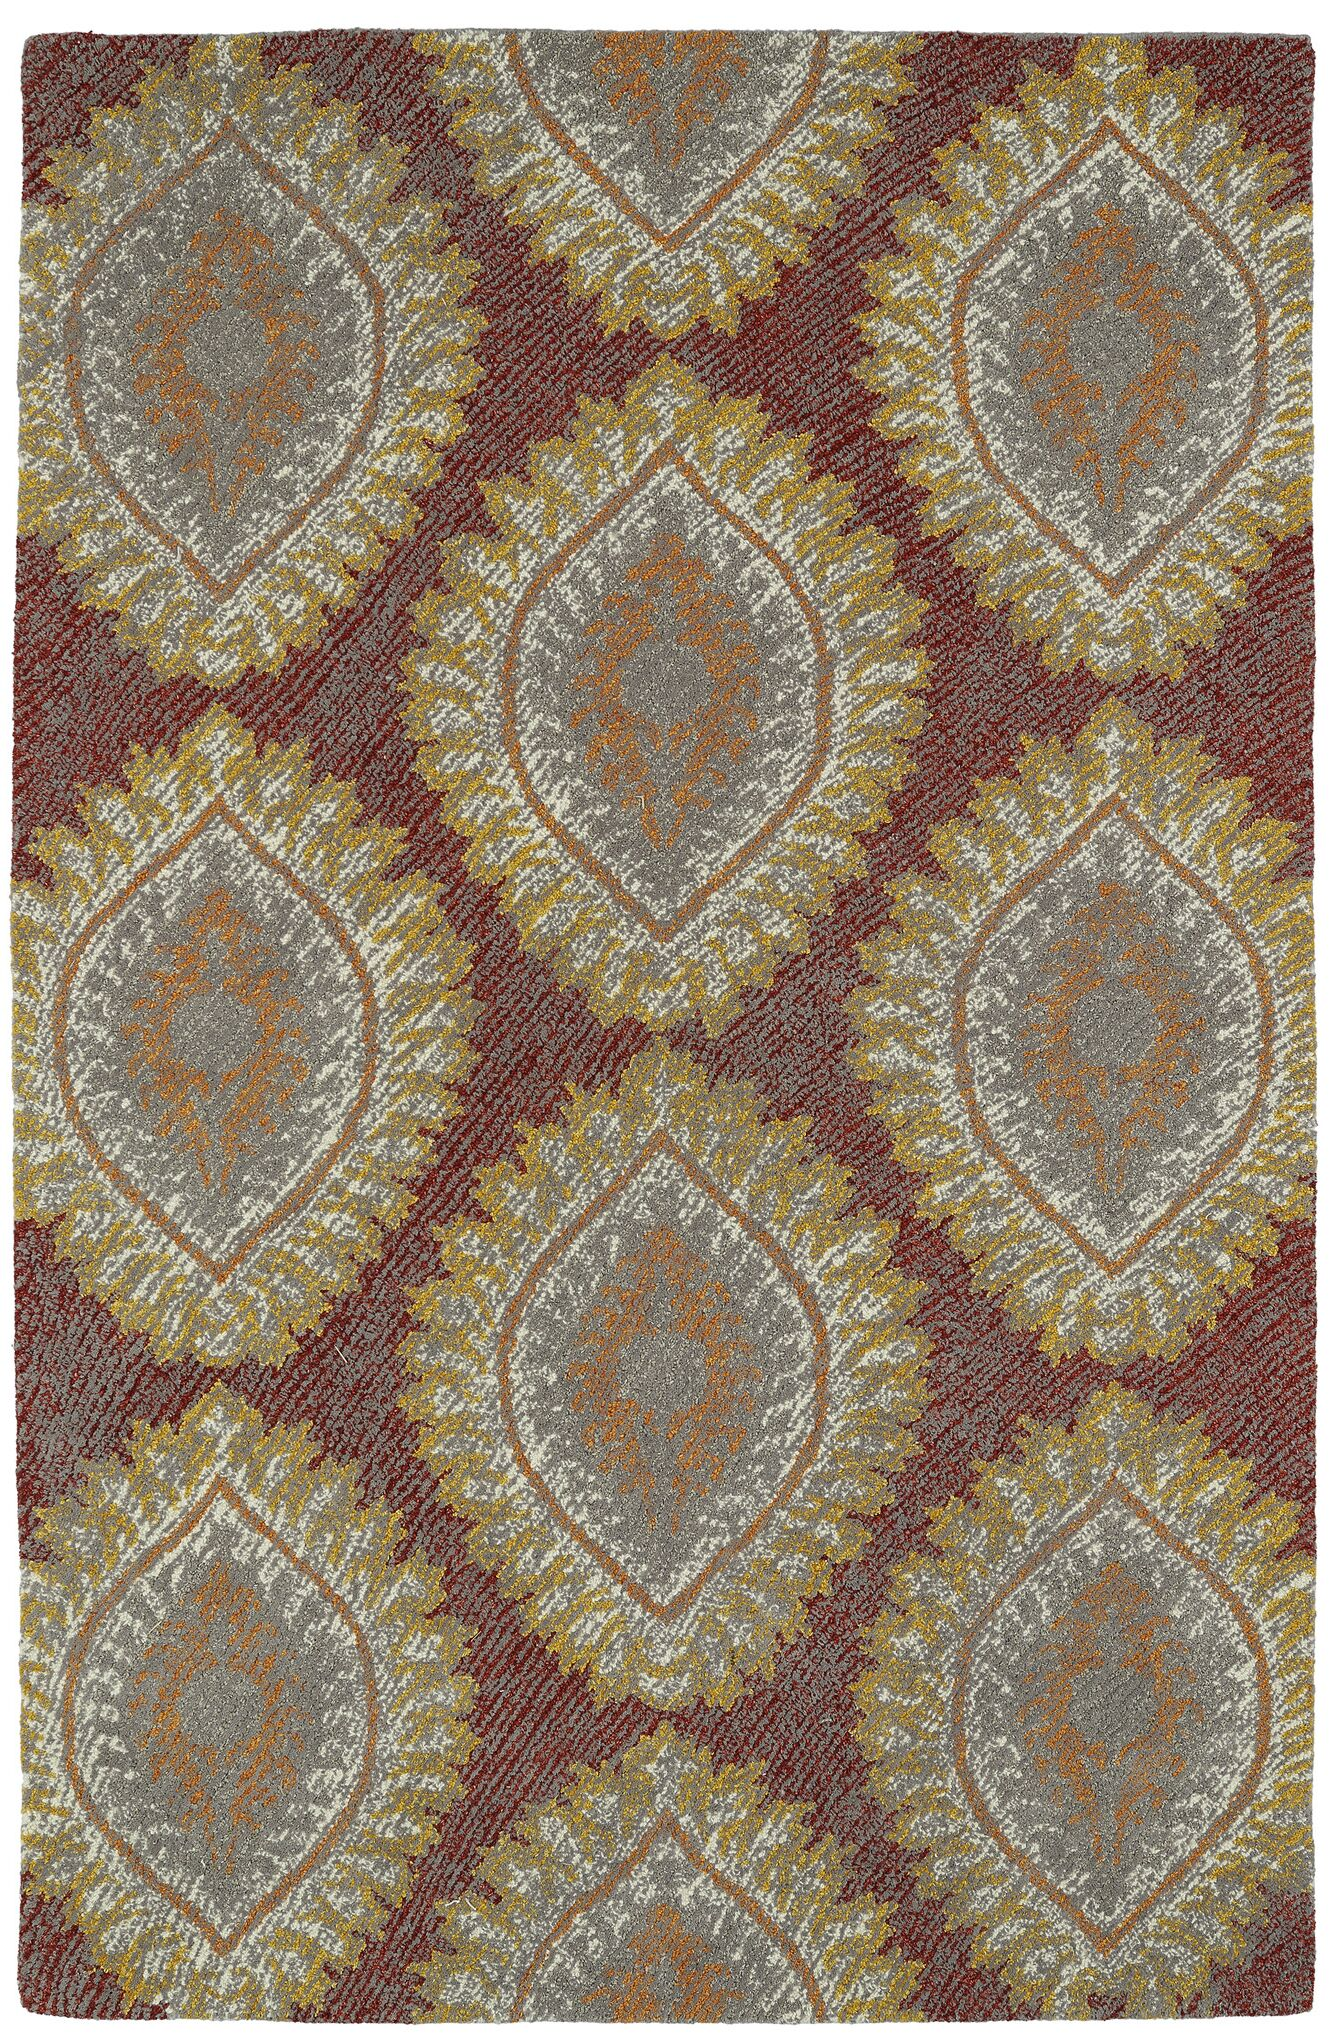 Locust Grove Hand-Tufted Red Area Rug Rug Size: Rectangle 8' x 10'